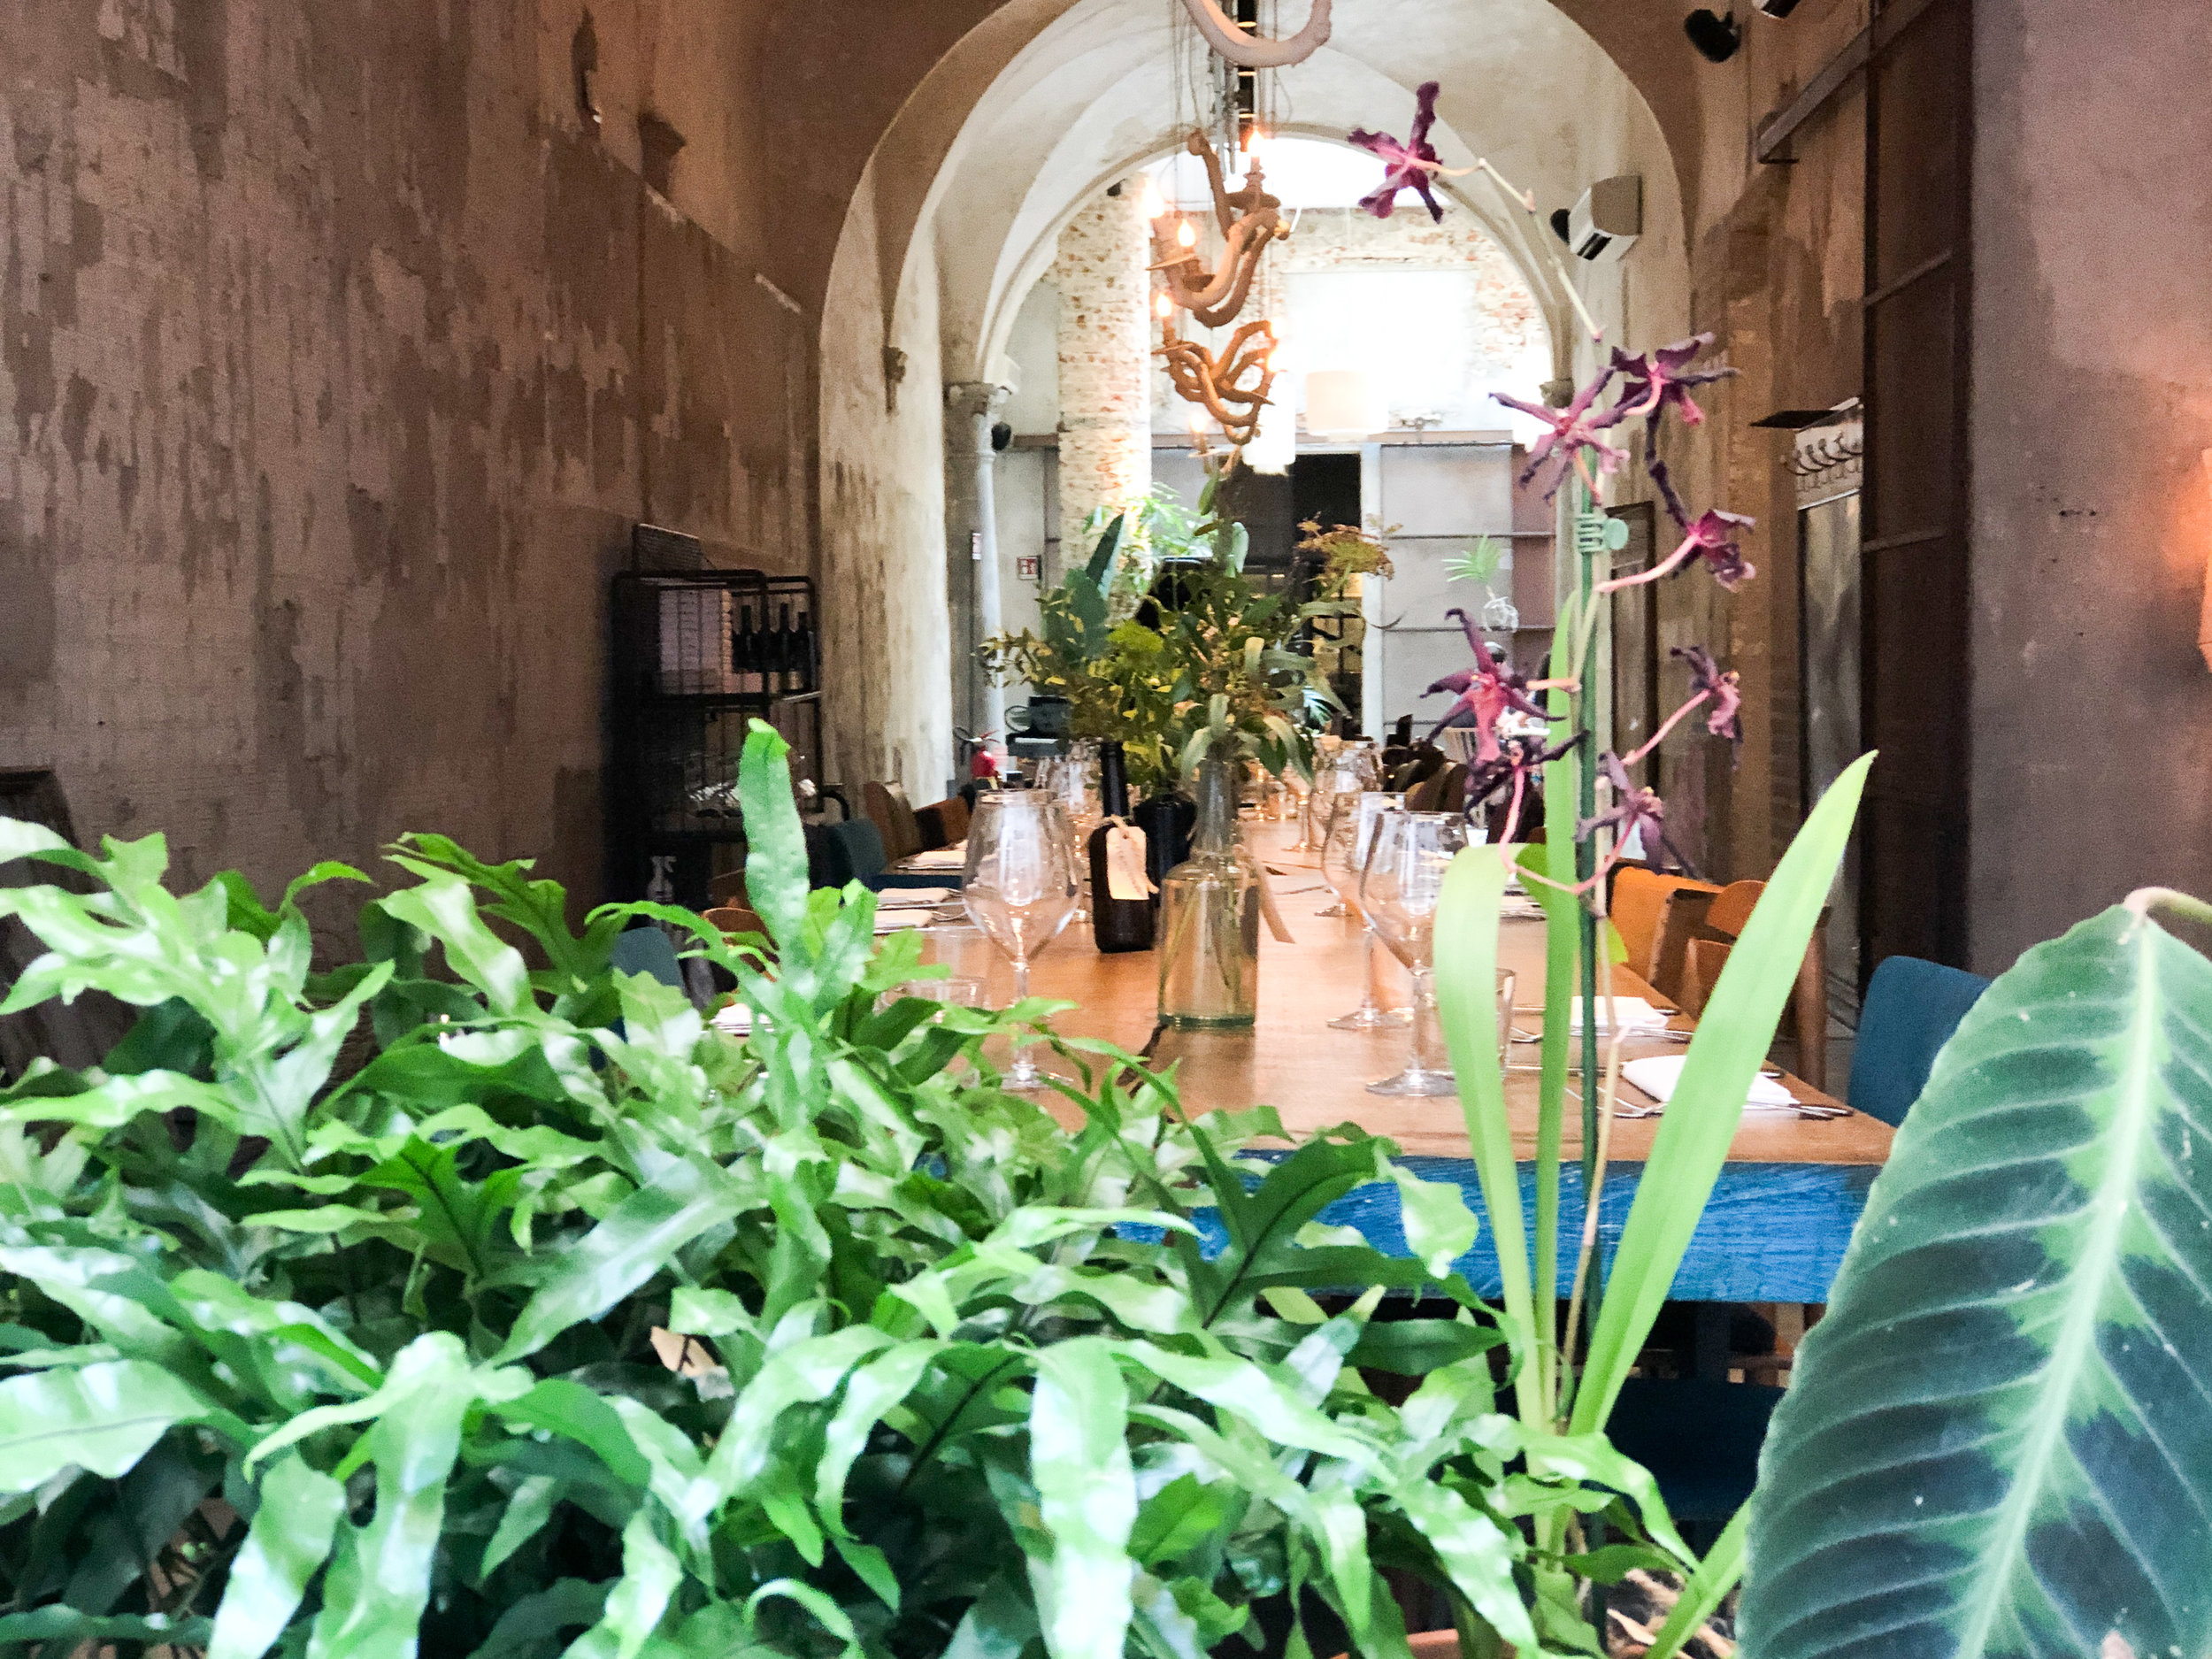 La Ménagère | Florencee Italy Firenze Italy | Happily Curated Chaos | happilycuratedchaos.com